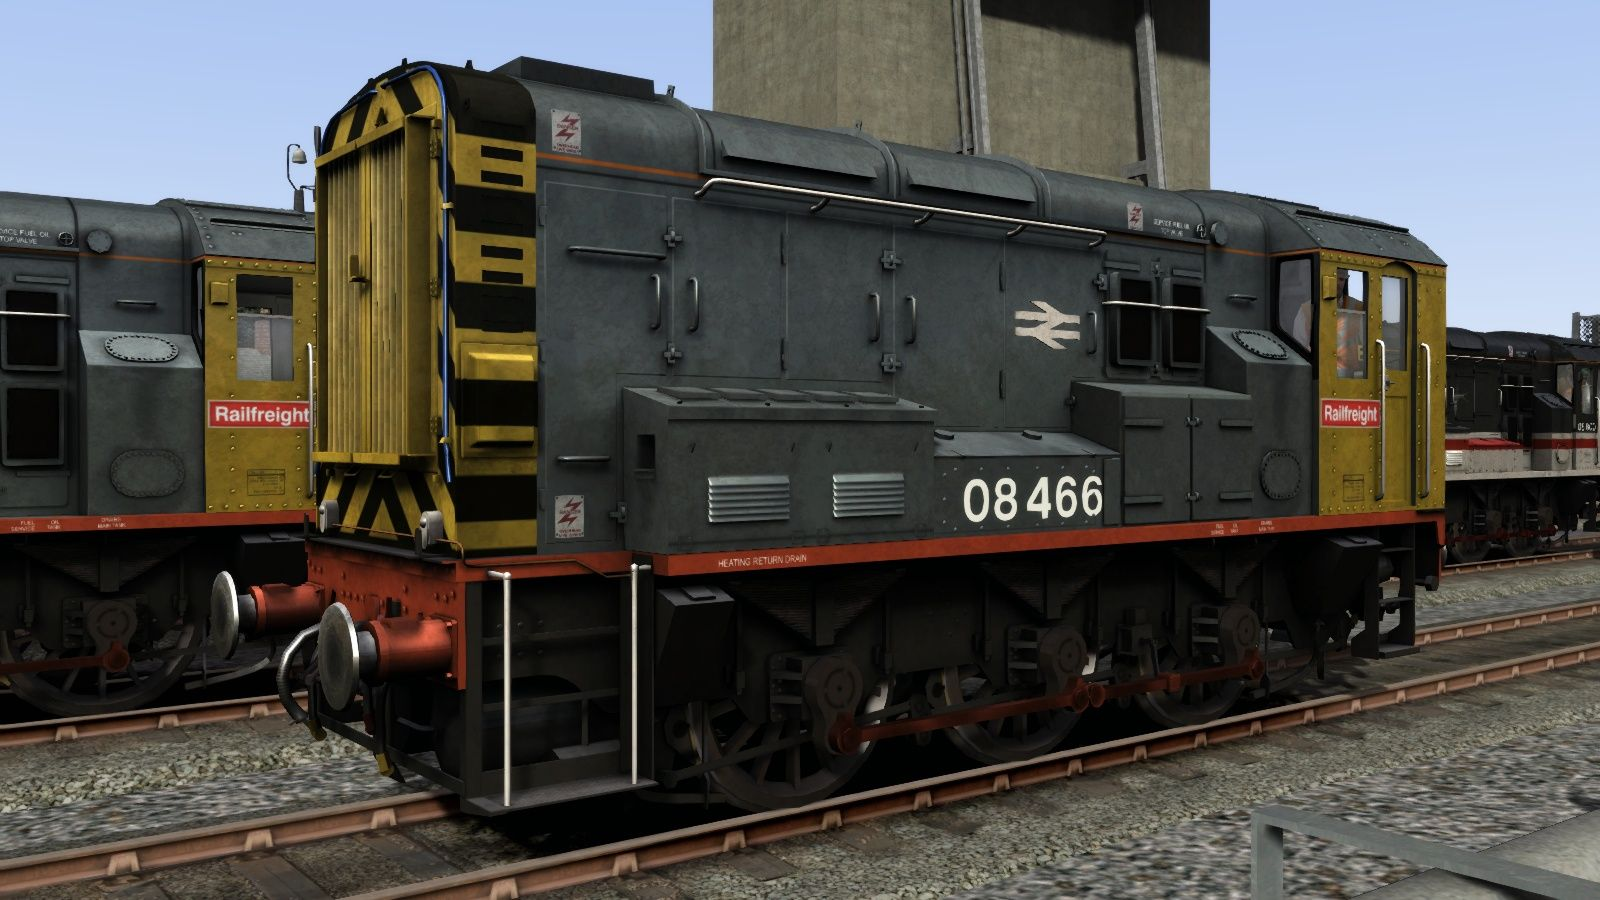 Image showing screenshot of the Railfreight liveried Class 08 pack from the TS Marketplace